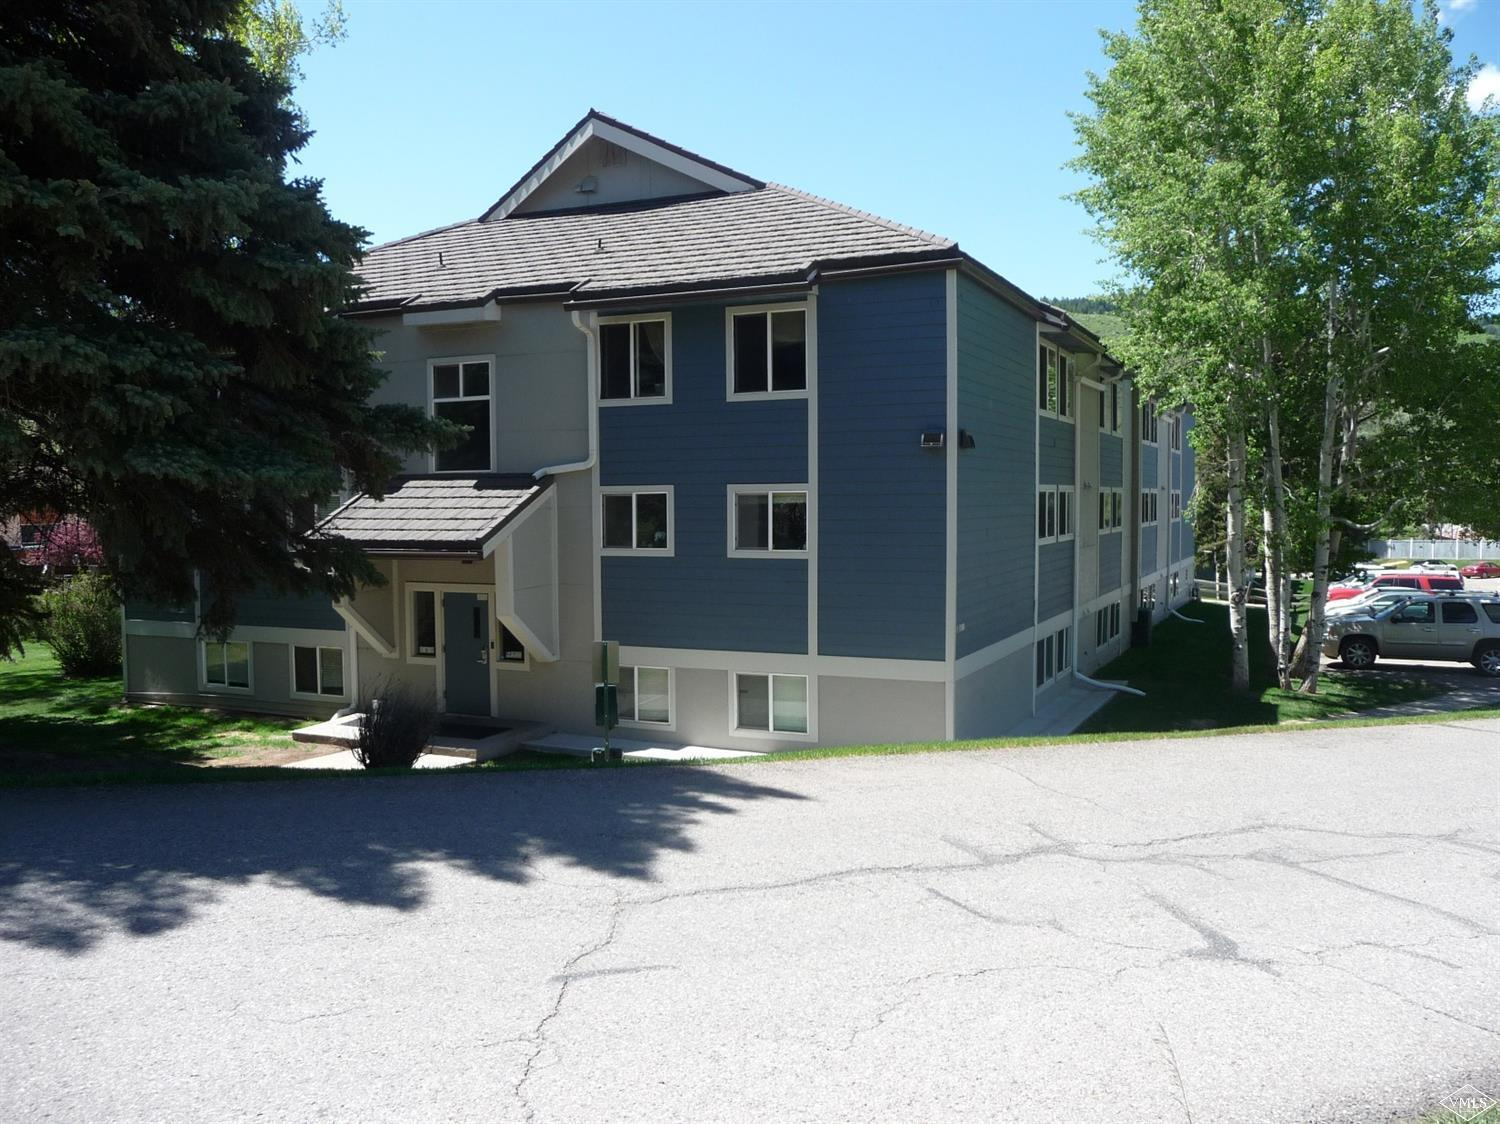 Fantastic investment opportunity with tenant in place through April of 2021. Located in the heart of Avon, this 2 bedroom 1 bathroom condo is walking distance from Nottingham Lake, The Eagle River, public tennis and basketball courts, and not to mention a short distance from world class skiing and snowboarding at Beaver Creek Resort. This could be the perfect mountain investment opportunity for you!